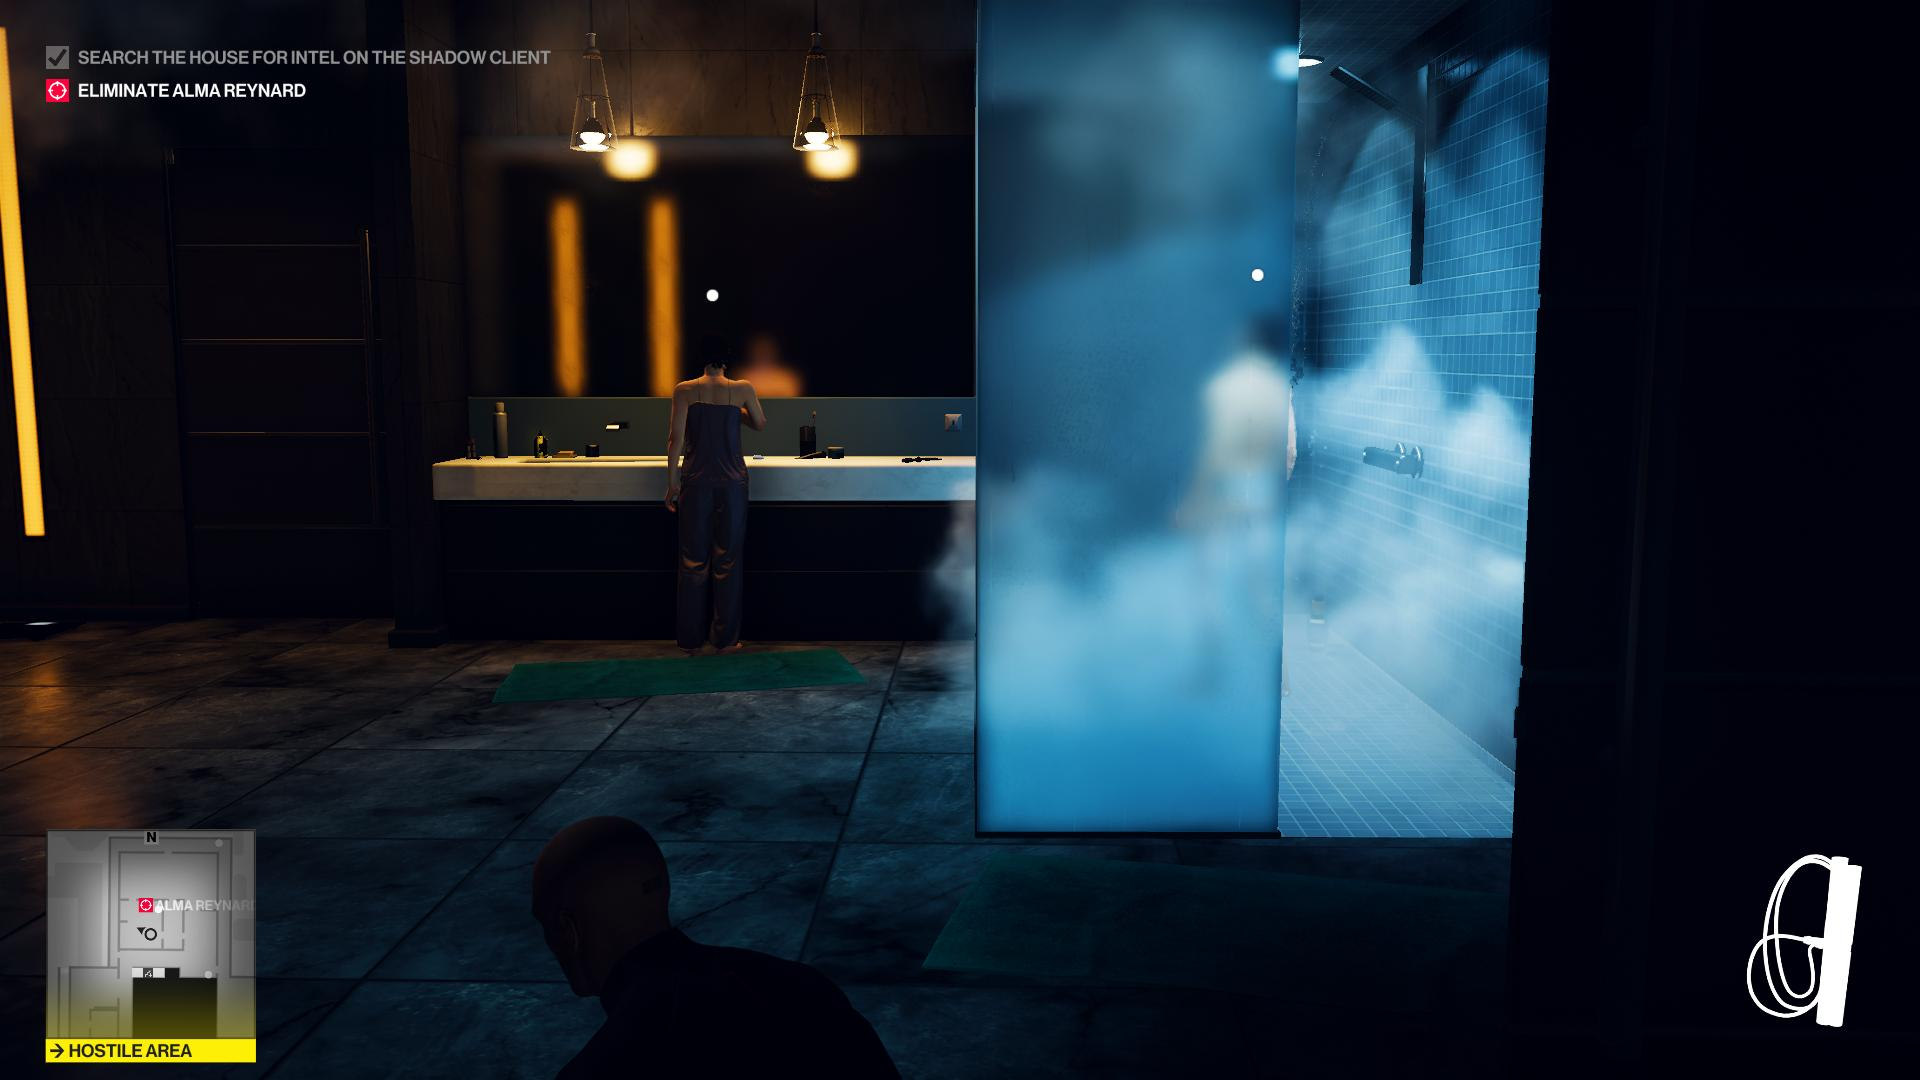 Agent 47 is standing in the shadows in the bathroom. A man is in the shower and a woman is brushing her teeth.